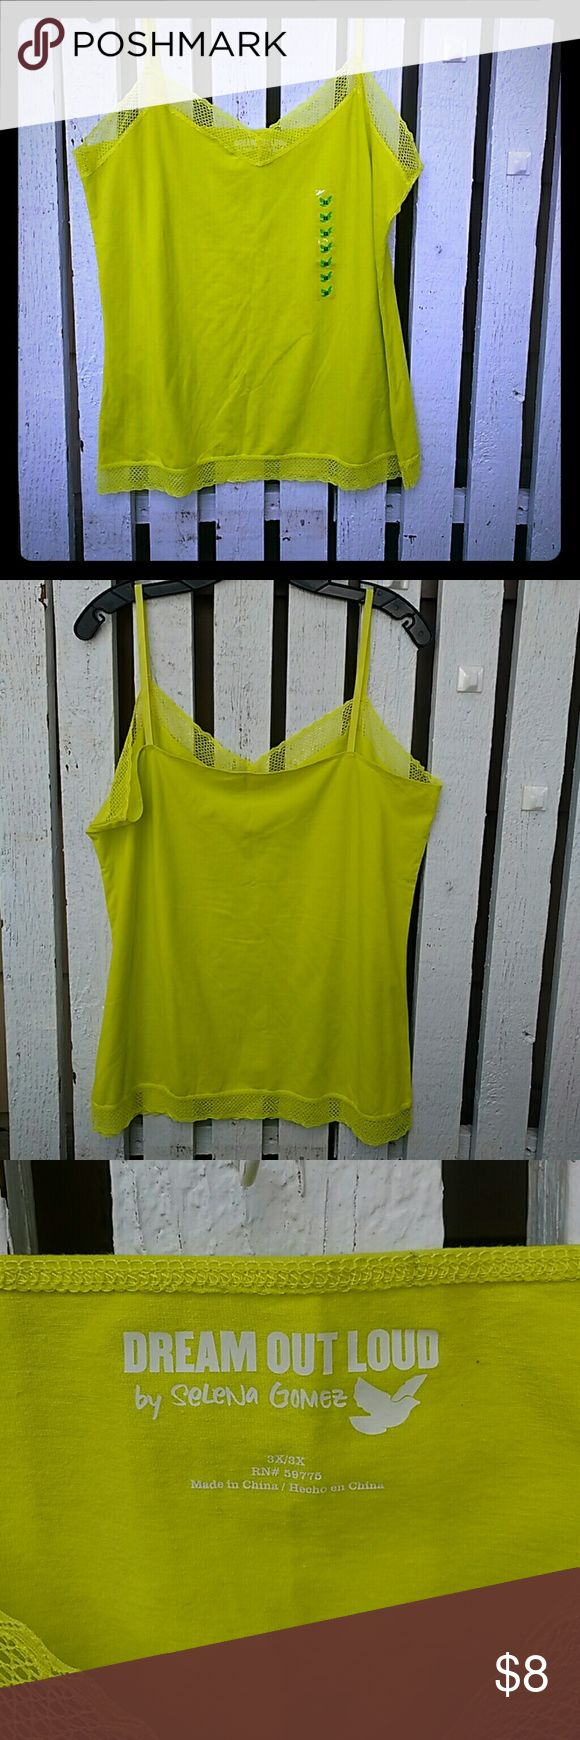 3X Dream out loud cami; new Never worn. Bright yellow cami, plunging V-neck. Top and bottom trim is mesh/lace. dream out loud Tops Camisoles